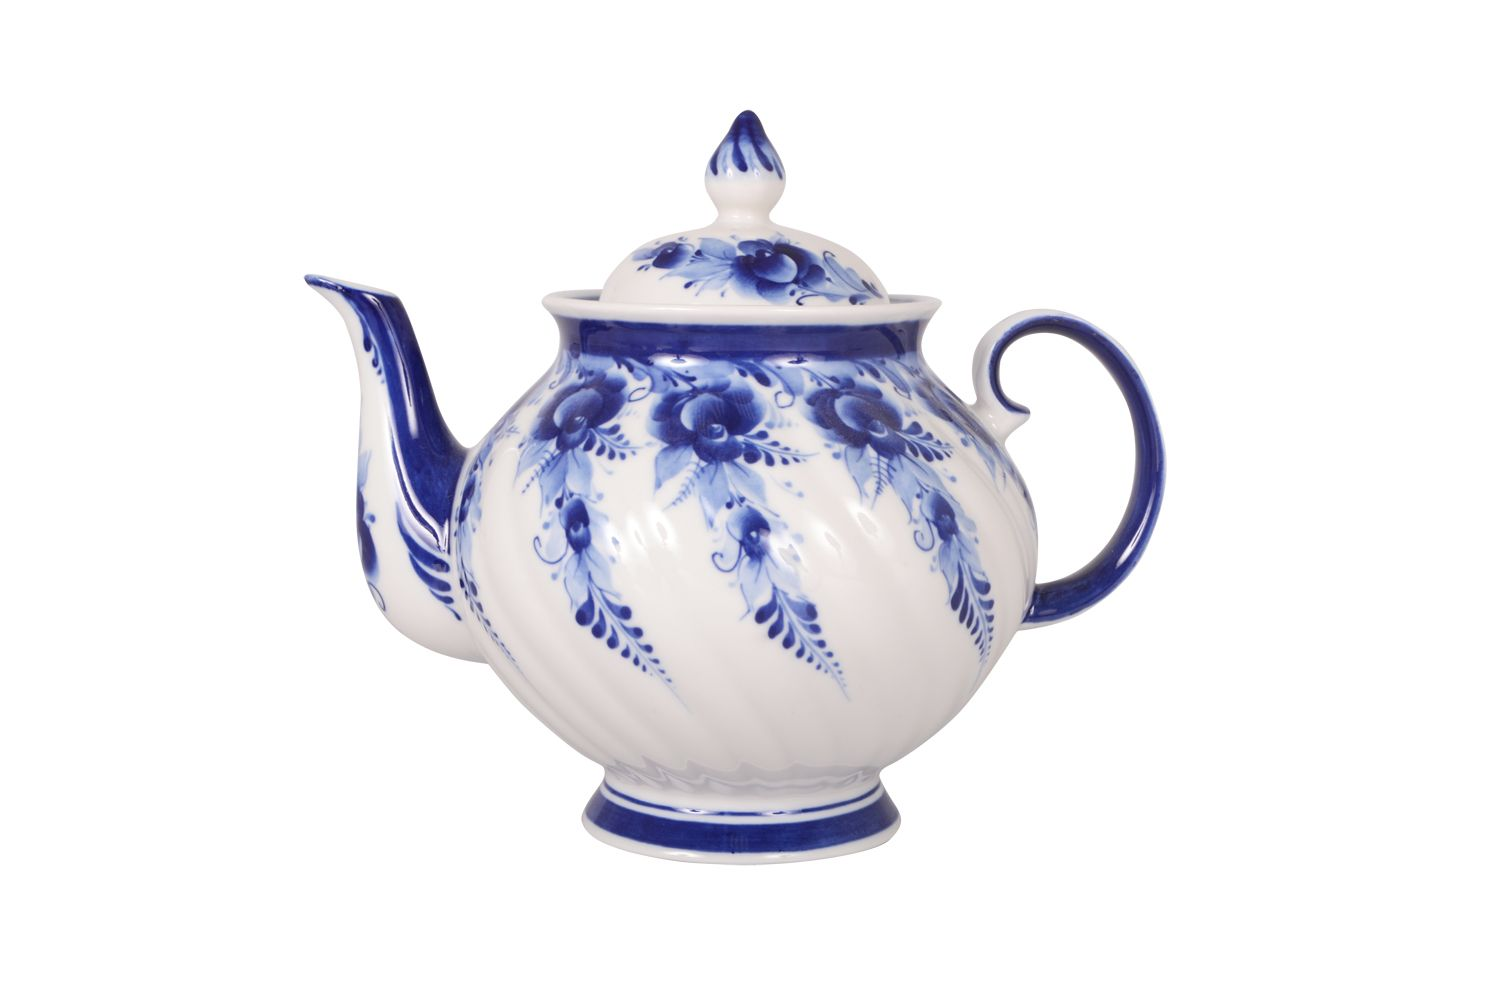 Dulevo Porcelain / Teapot 1200 ml Blue Rose